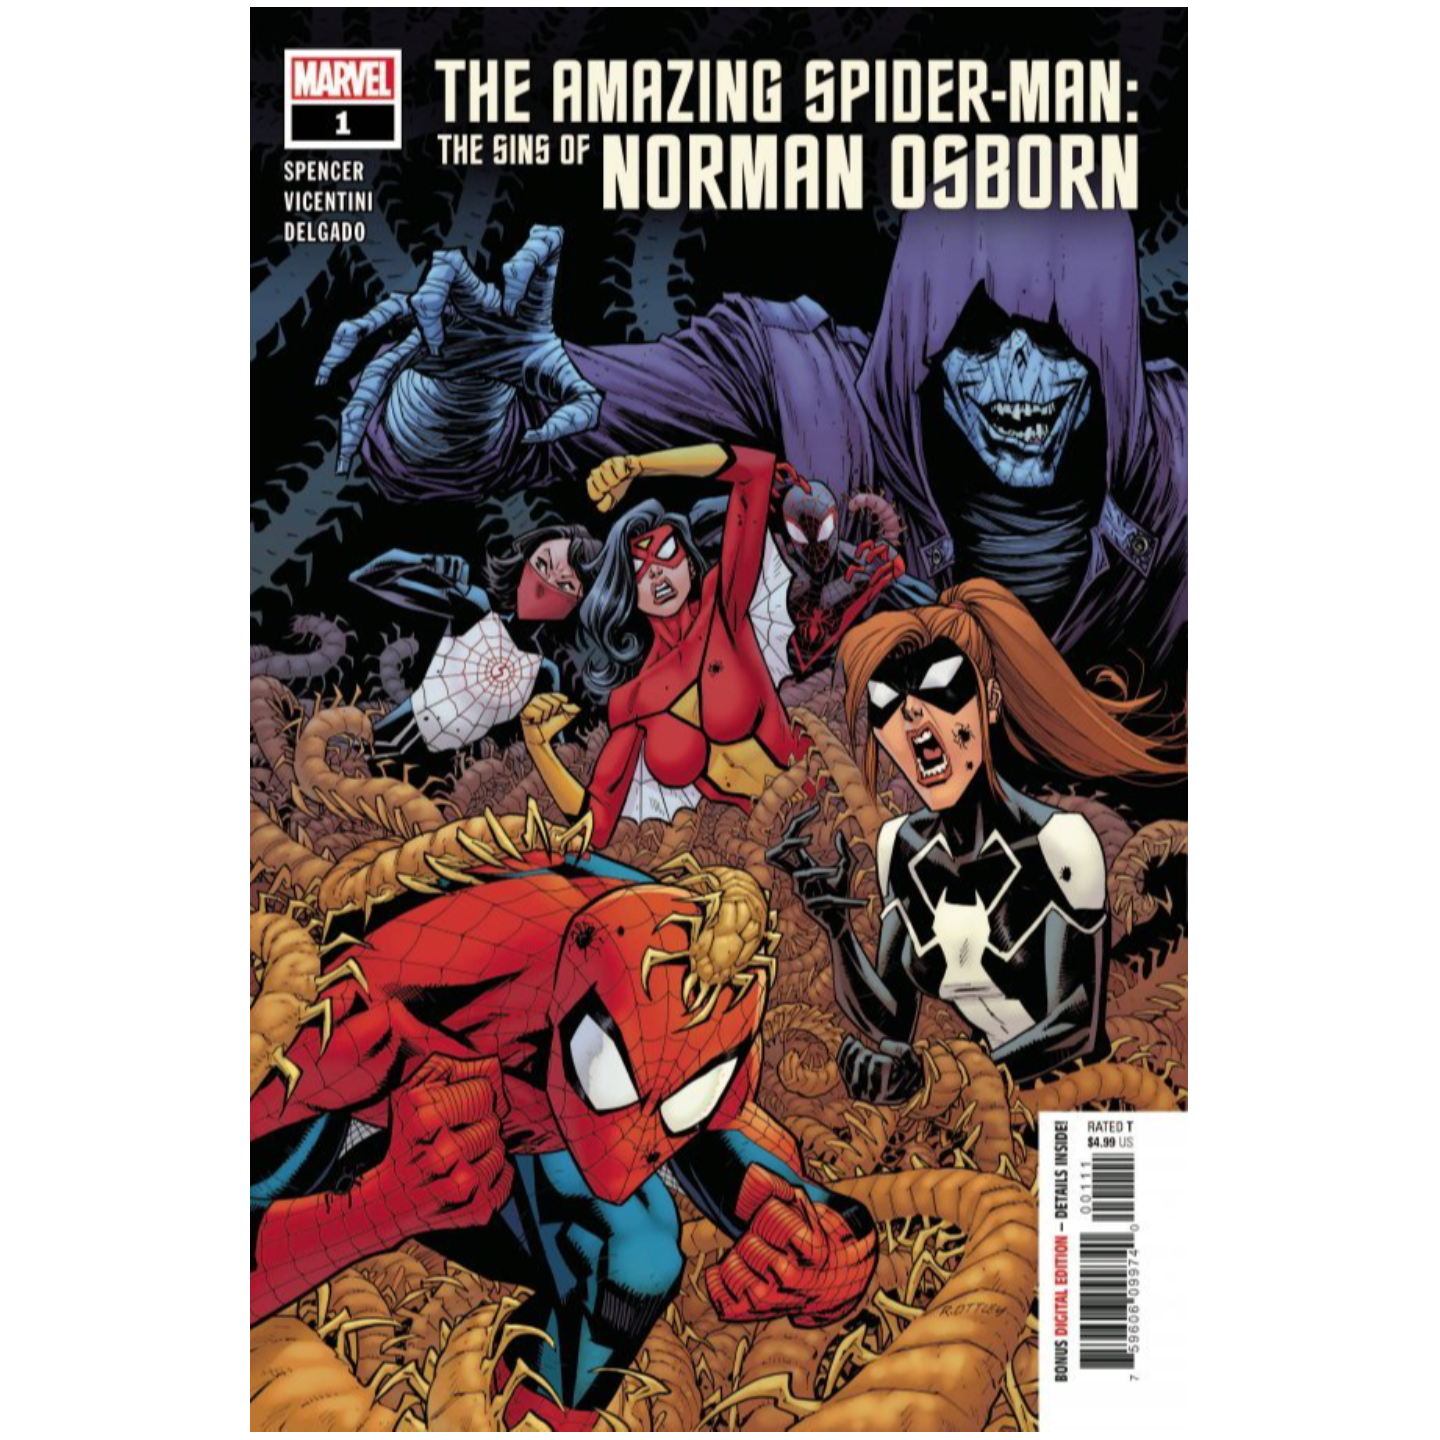 AMAZING SPIDER-MAN SINS OF NORMAN OSBORN #1